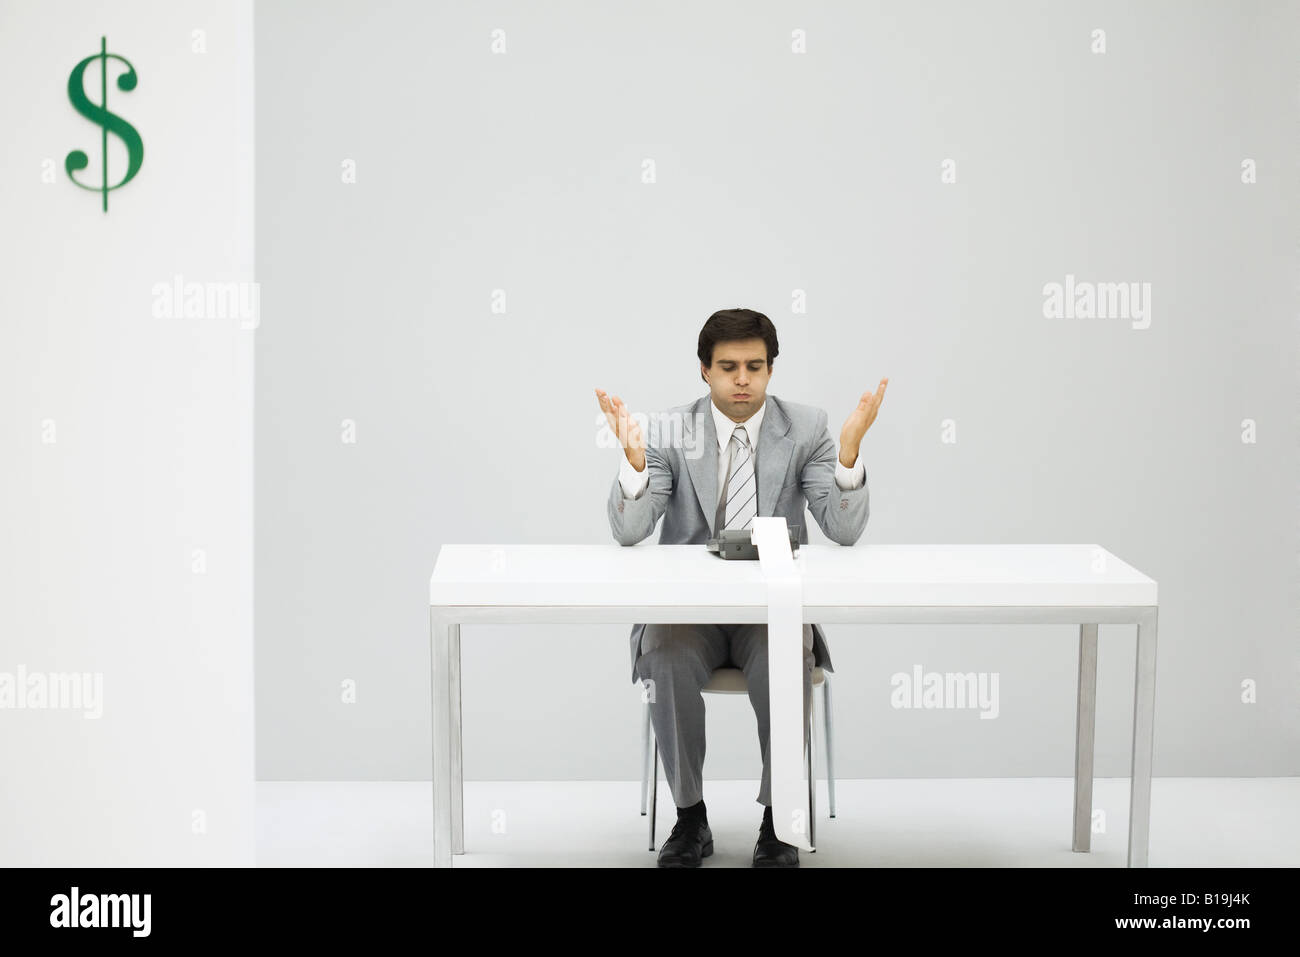 Man sitting at desk with adding machine, puffed cheeks, hands raised - Stock Image